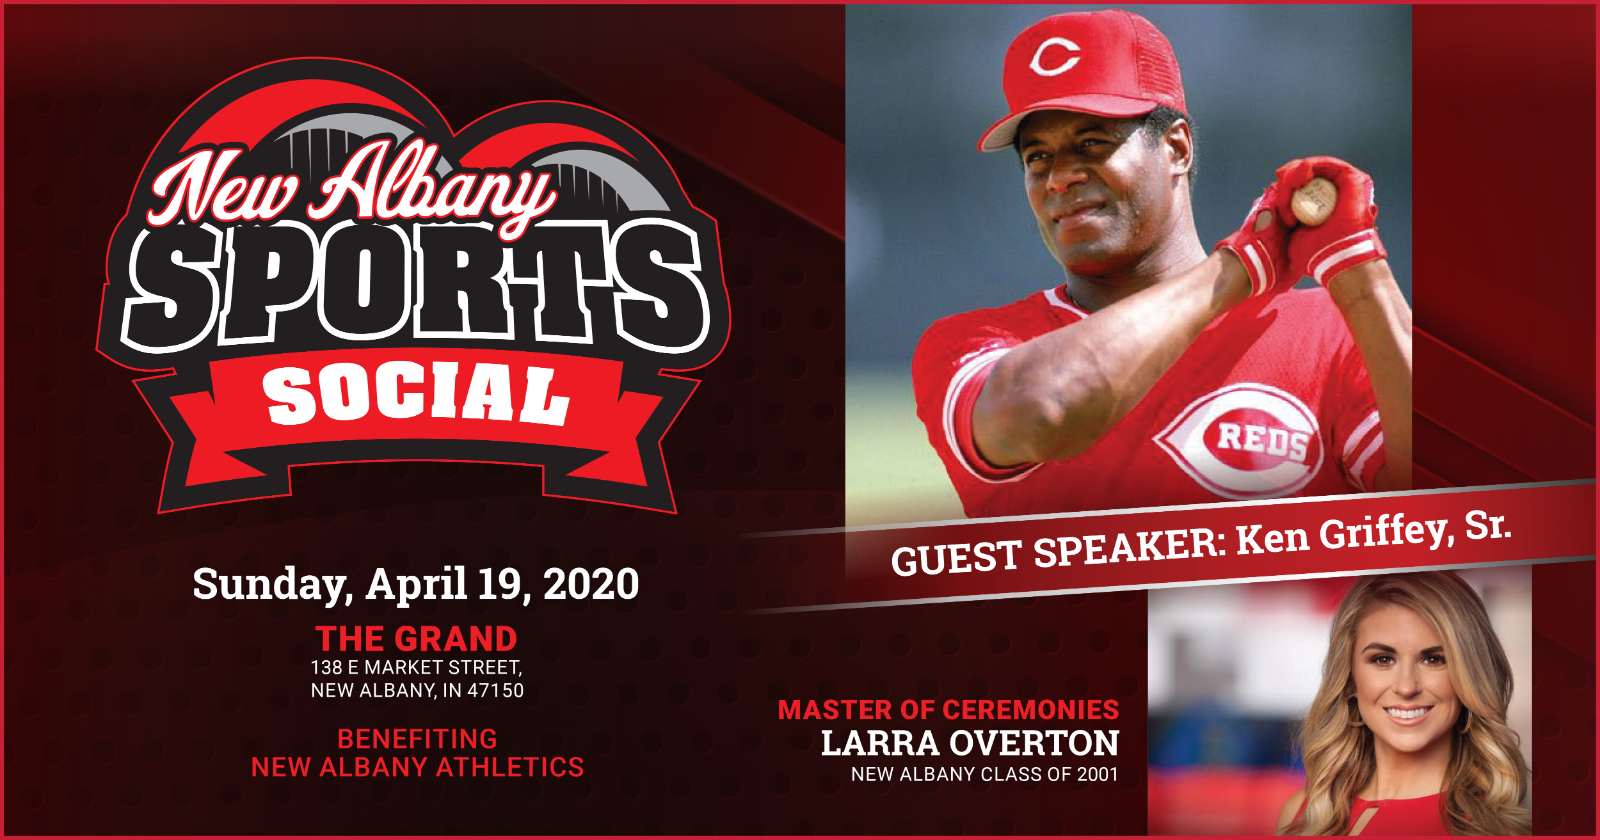 Ken Griffey, Sr., to headline first-ever New Albany Sports Social